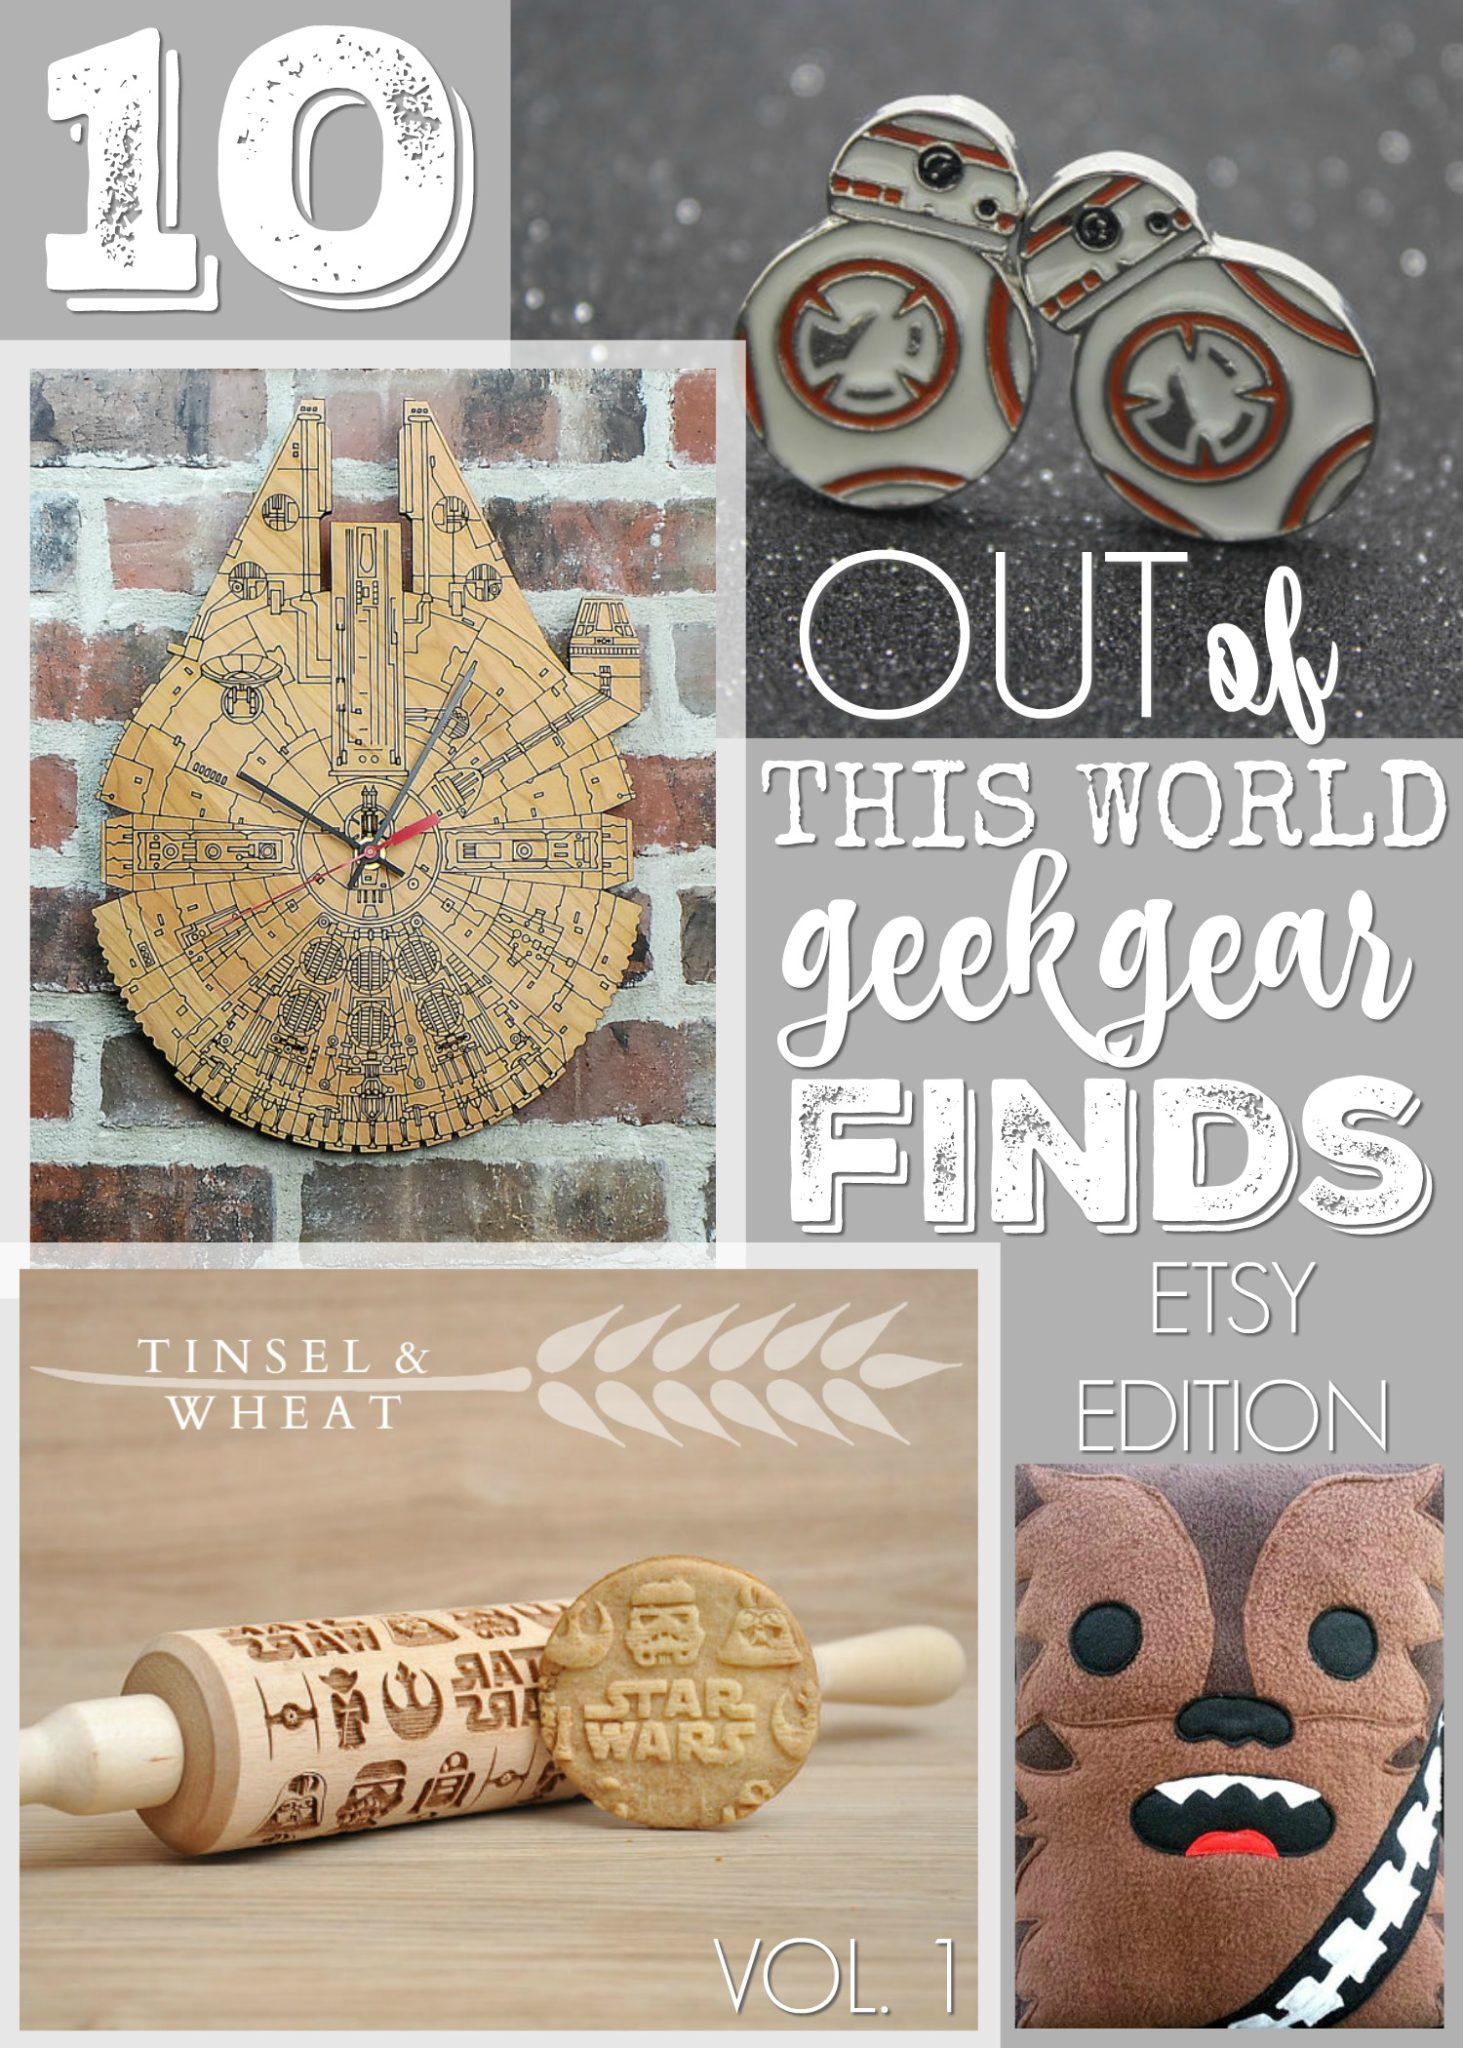 10 Star Wars Geeky Gift Ideas Etsy Edition by Tinsel & Wheat